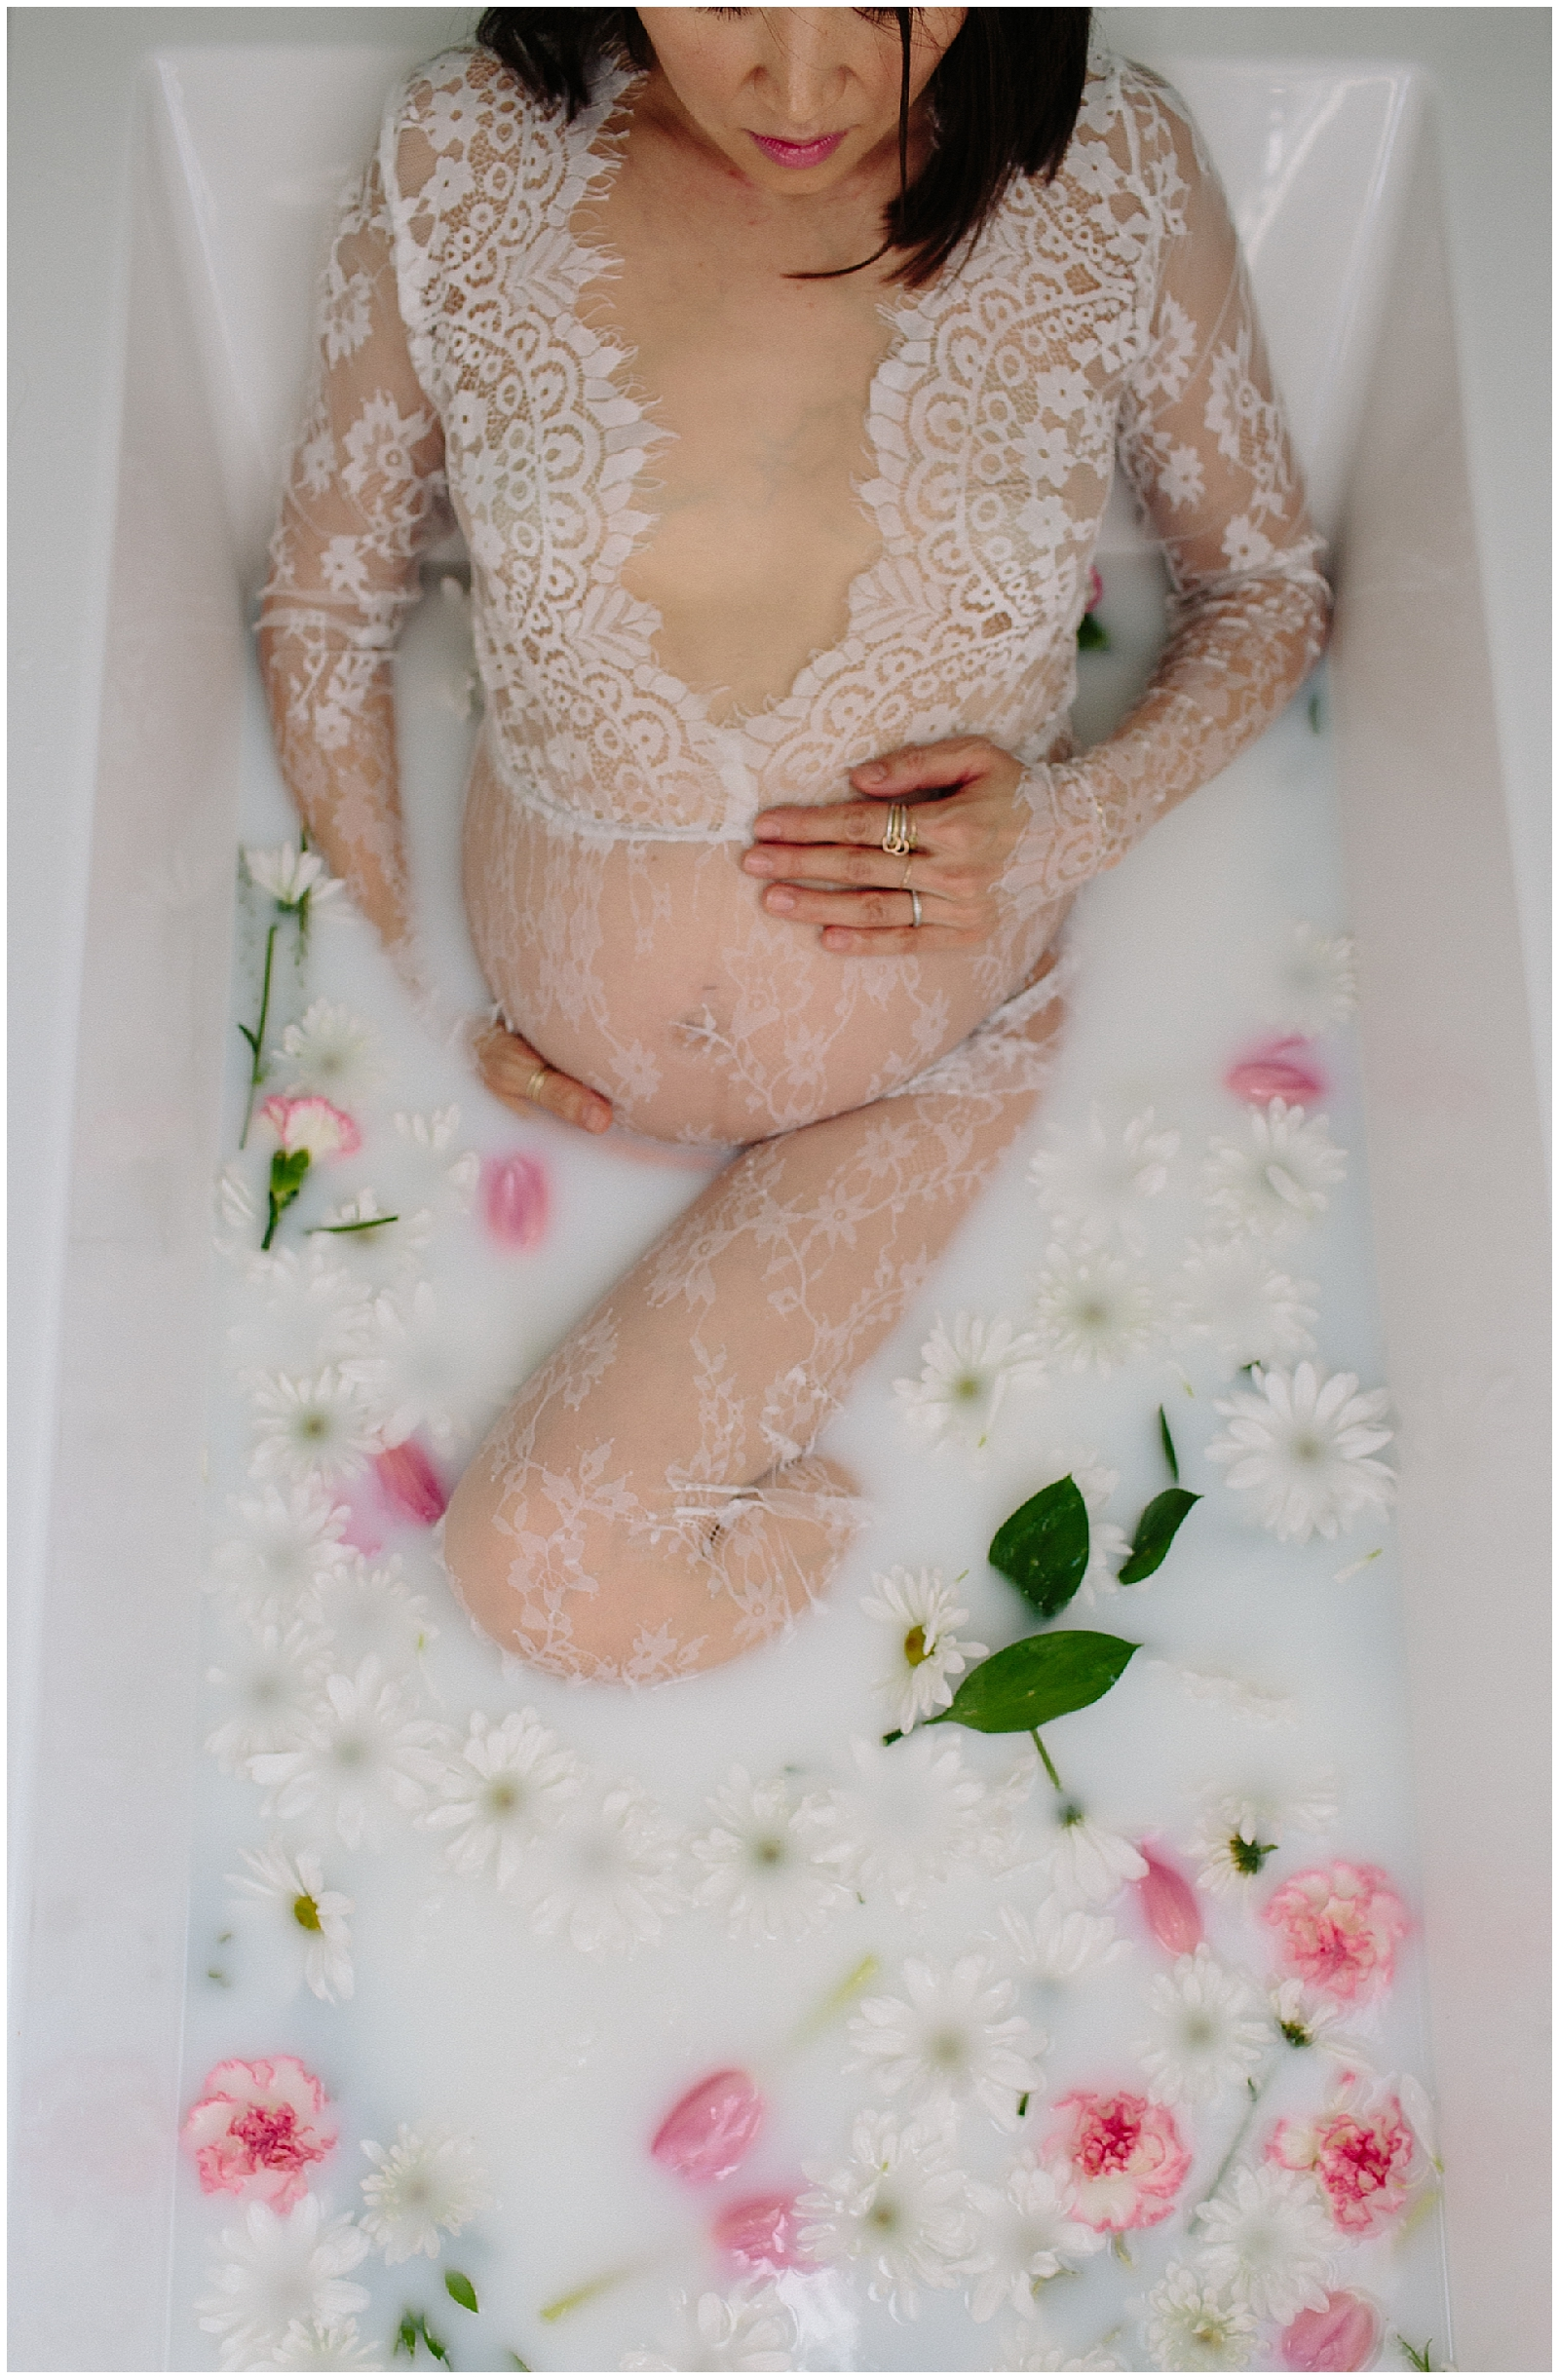 milk-bath-maternity-photography